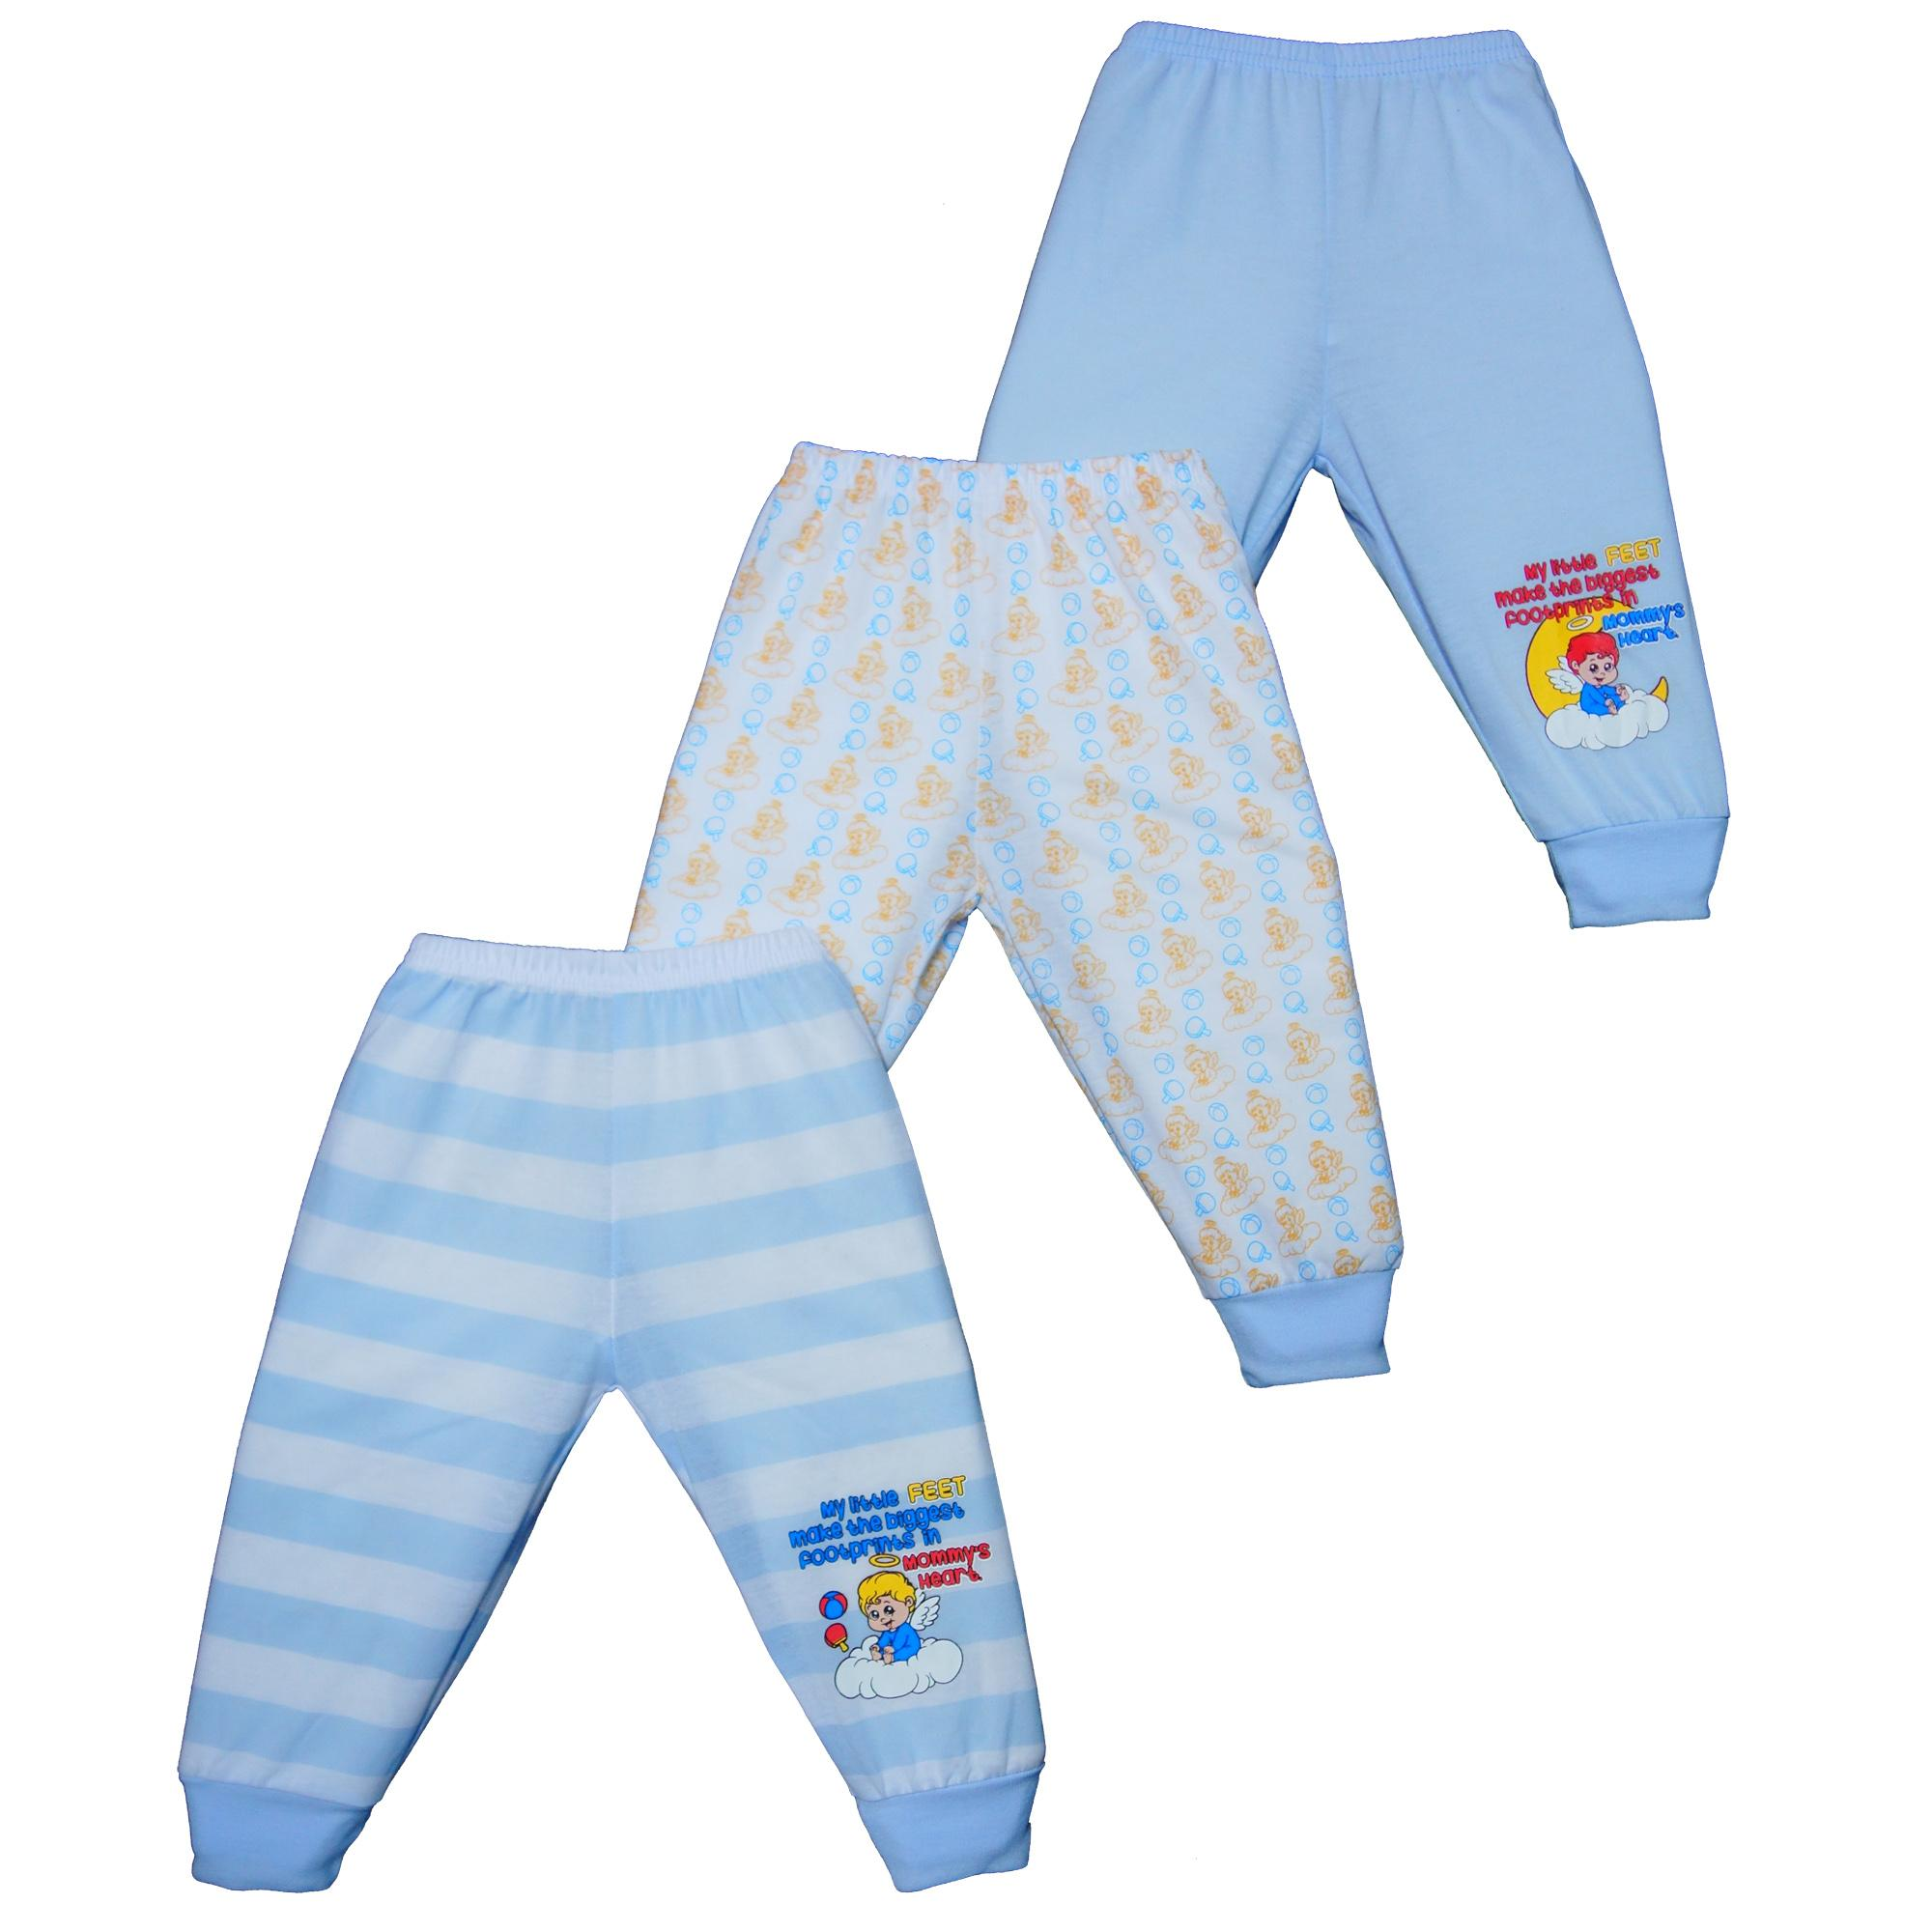 e68e86fcf Froshie 3-piece Baby Cotton Pajama Pants with Leg Band (My little feet make